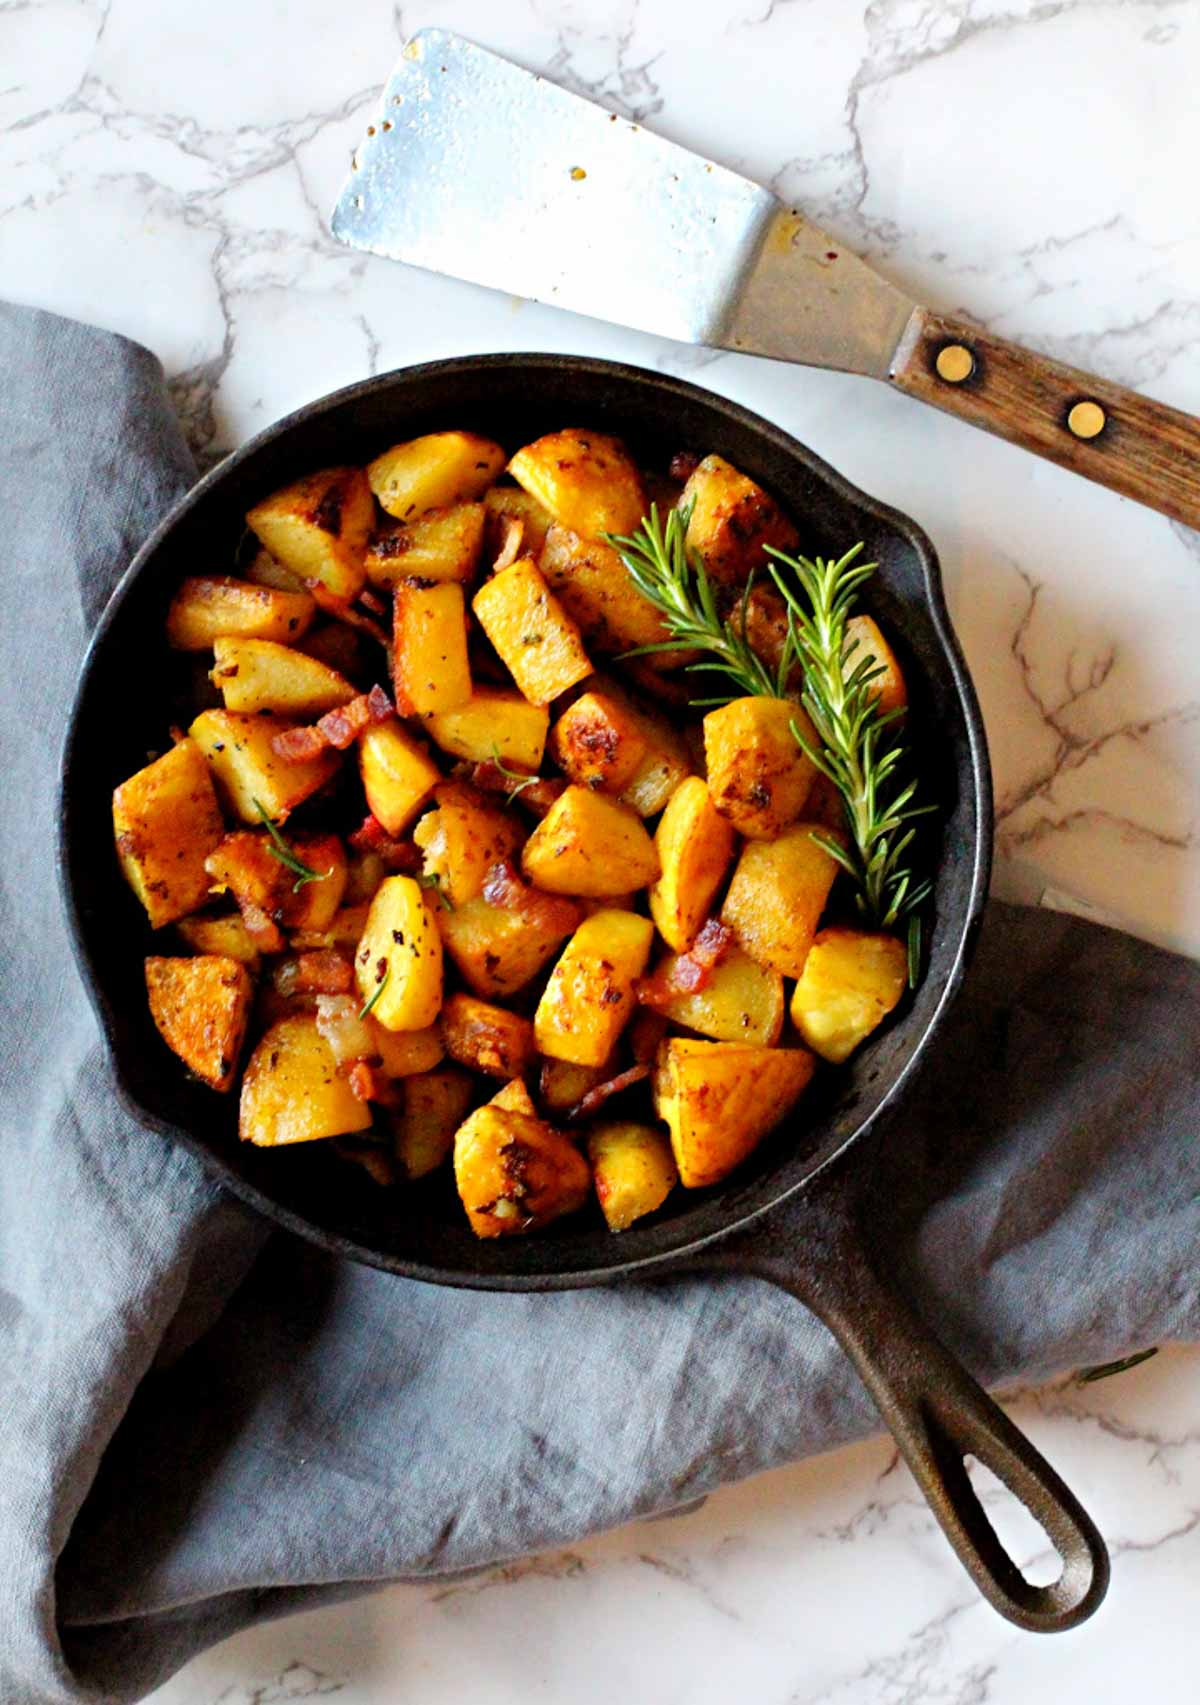 Cubed potatoes cooked in a cast iron skillet with rosemary